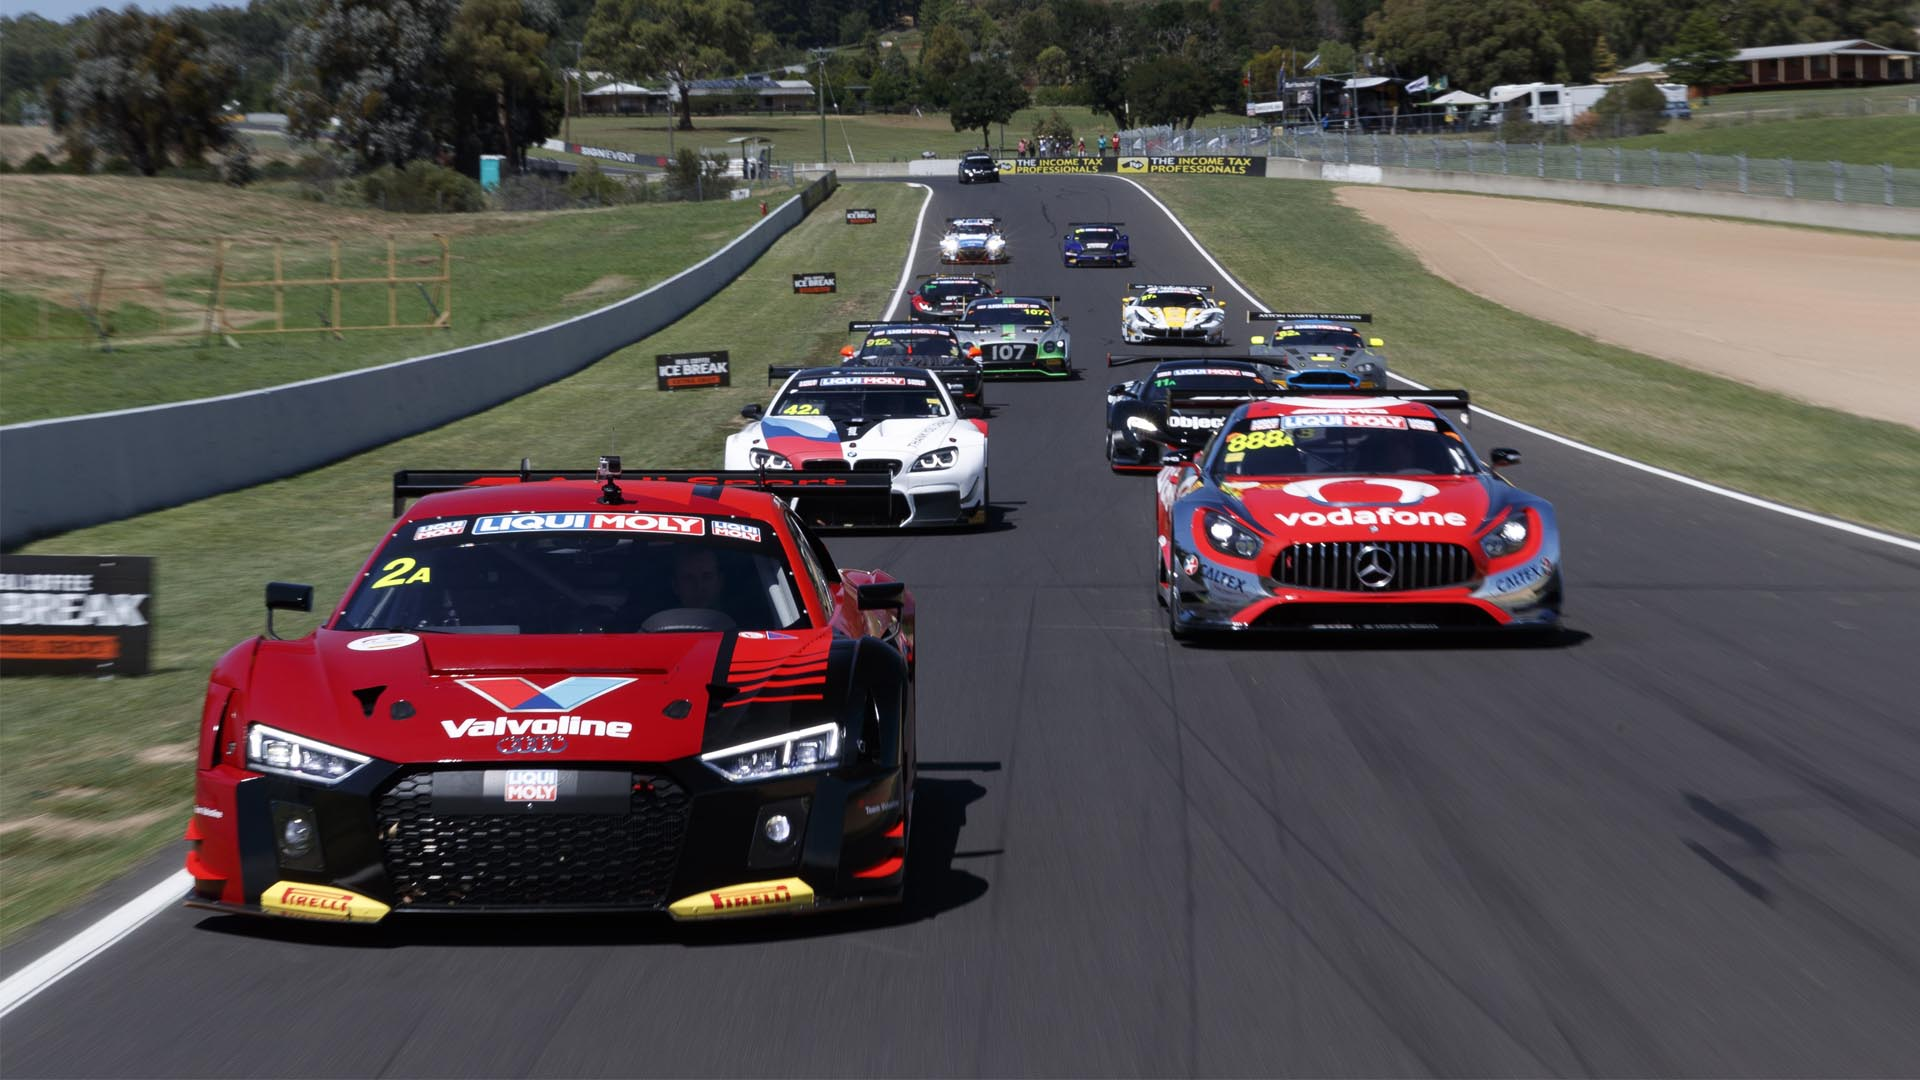 Pregame The Superbowl With 12 Hours Of Endurance Racing This Weekend